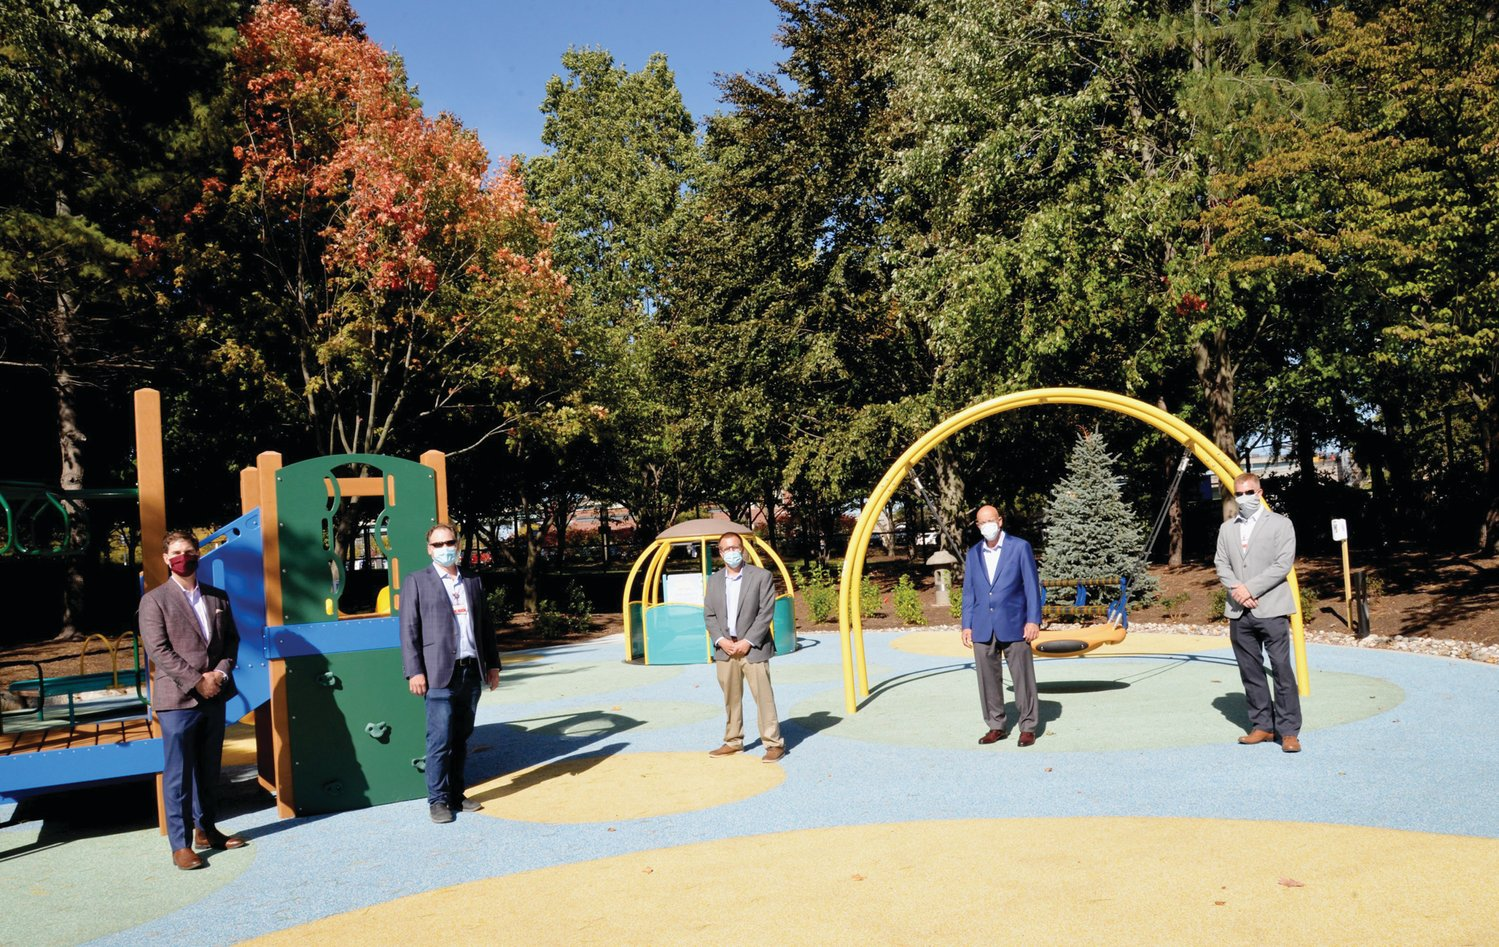 THE BUILDERS: Hasbro Children's Hospital marked a milestone in its ongoing renovations with the completion of the new Balise Healing Garden and a reimagined playground. Construction of the garden and playground were led by Cranston-based Pariseault Builders. Members of the Pariseault Builders team include, from left, Brian Casey, president; Caleb Messier, senior project manager; Dan Buttner, project manager; Tom Rezendes, senior vice president; and Kyle Lloyd, vice president.